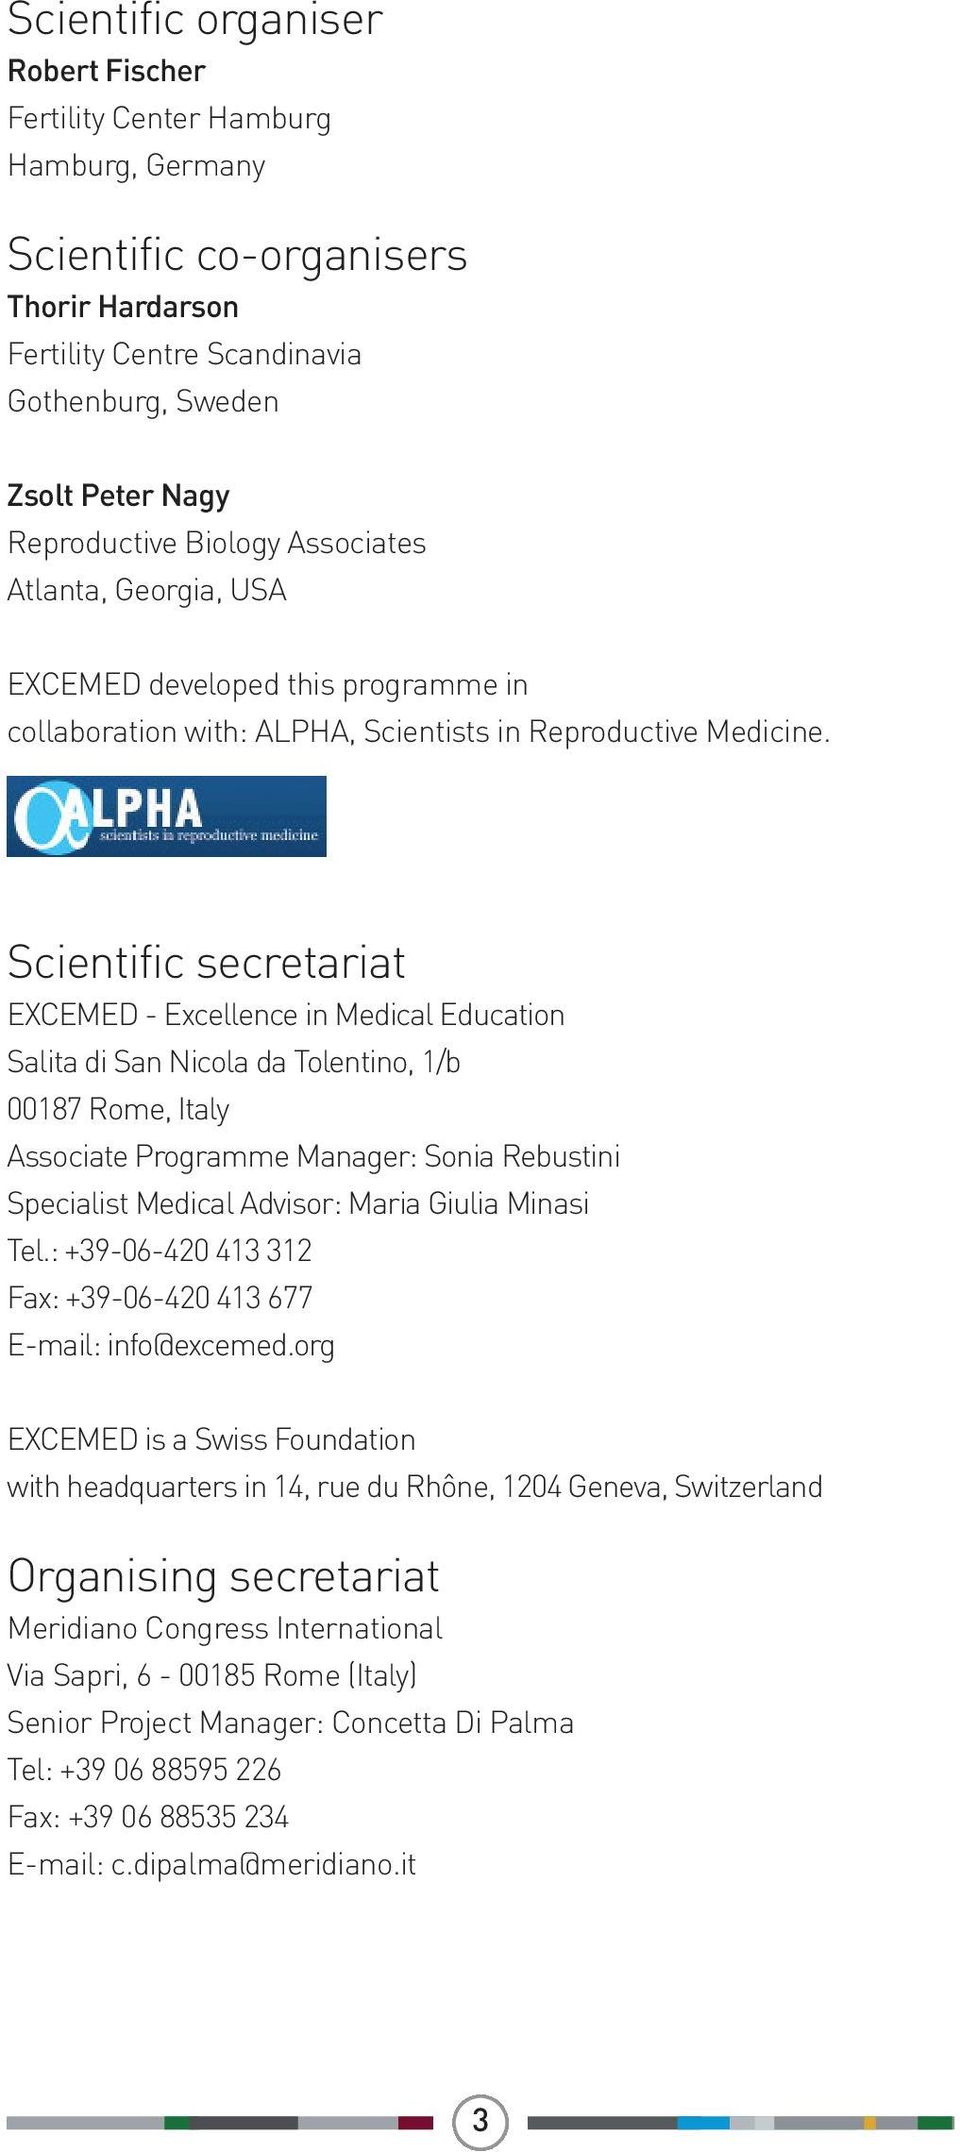 Scientific secretariat EXCEMED - Excellence in Medical Education Salita di San Nicola da Tolentino, 1/b 00187 Rome, Italy Associate Programme Manager: Sonia Rebustini Specialist Medical Advisor: